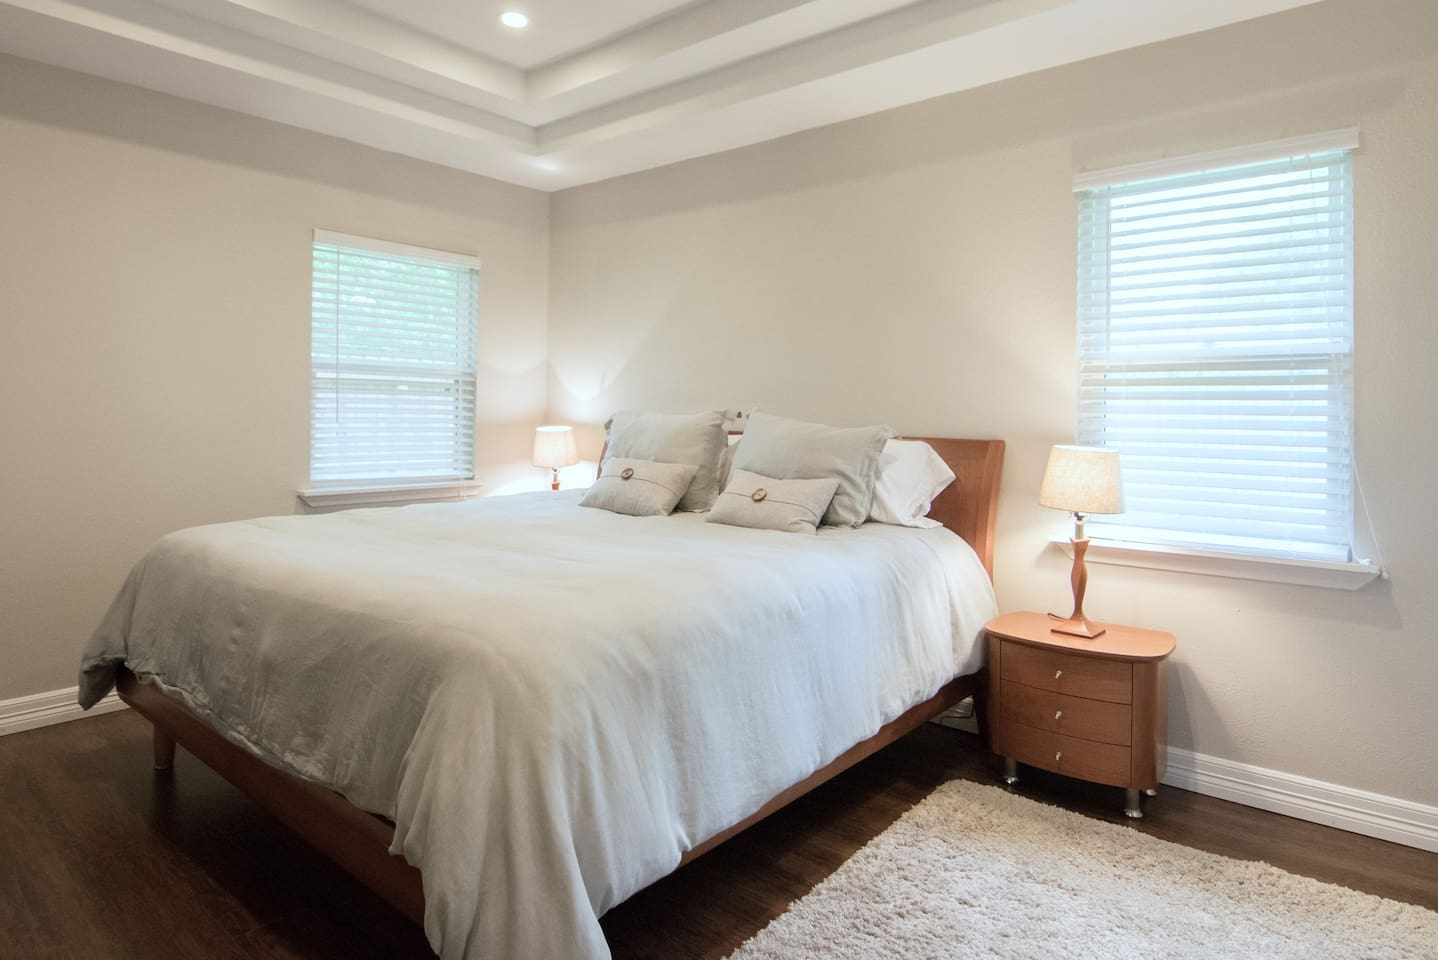 Master Bedroom with attached bathroom